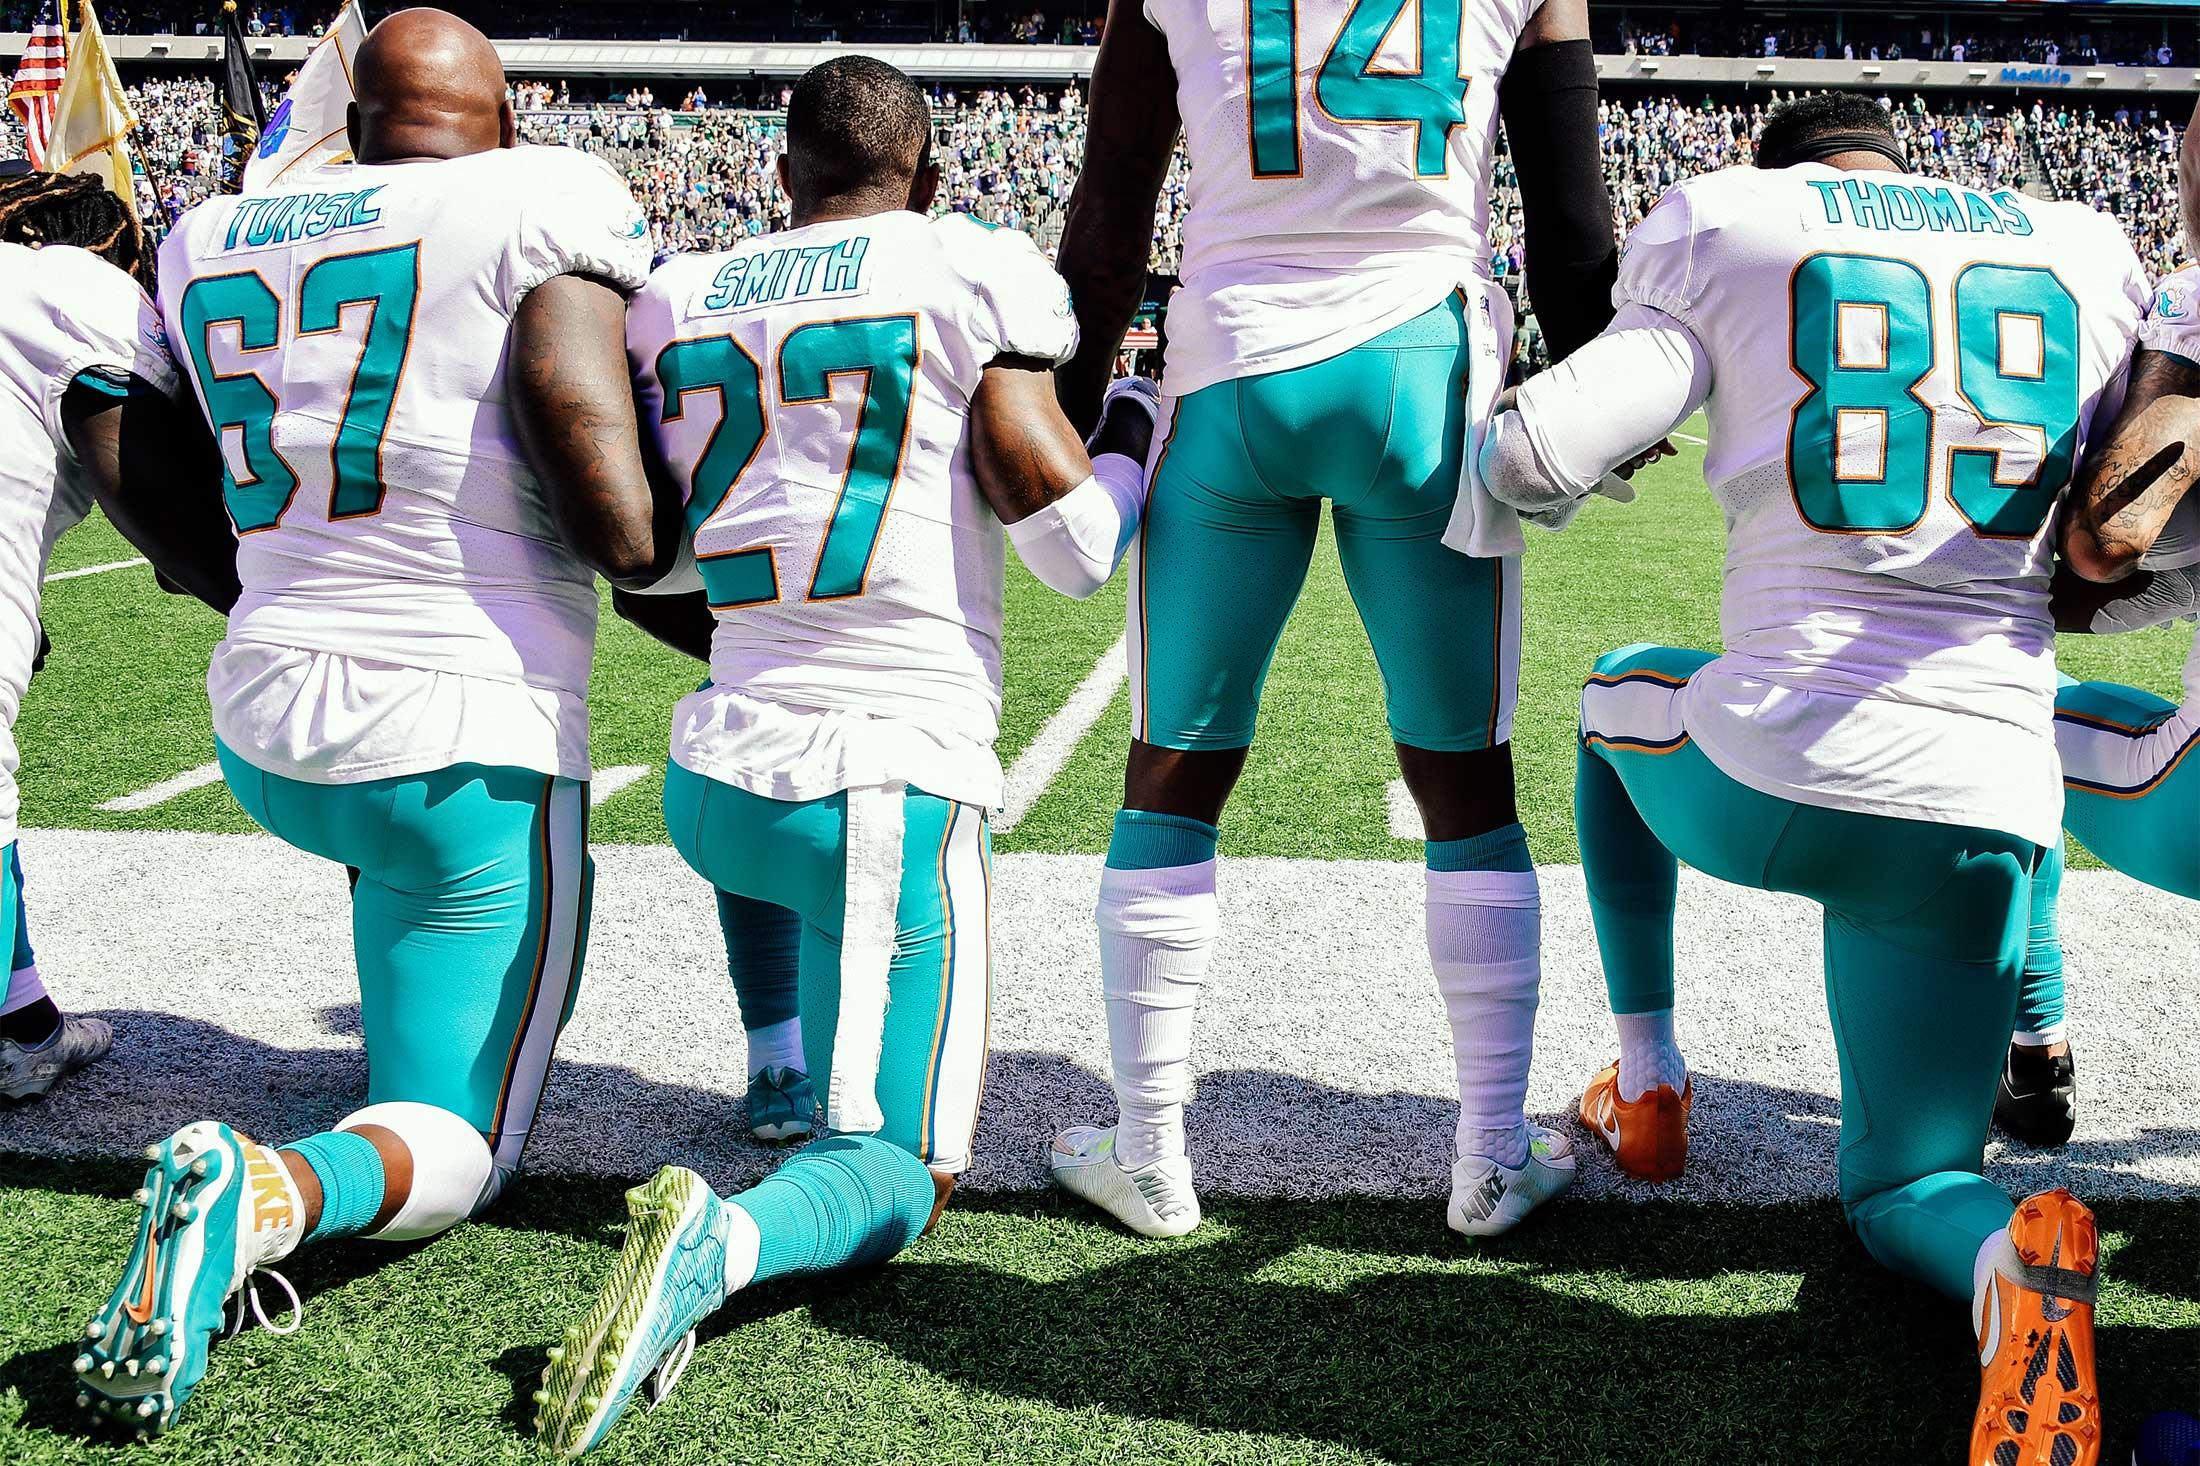 Miami Dolphins Laremy Tunsil, Maurice Smith, and Julius Thomas kneel as Jarvis Landry stands on the sidelines.